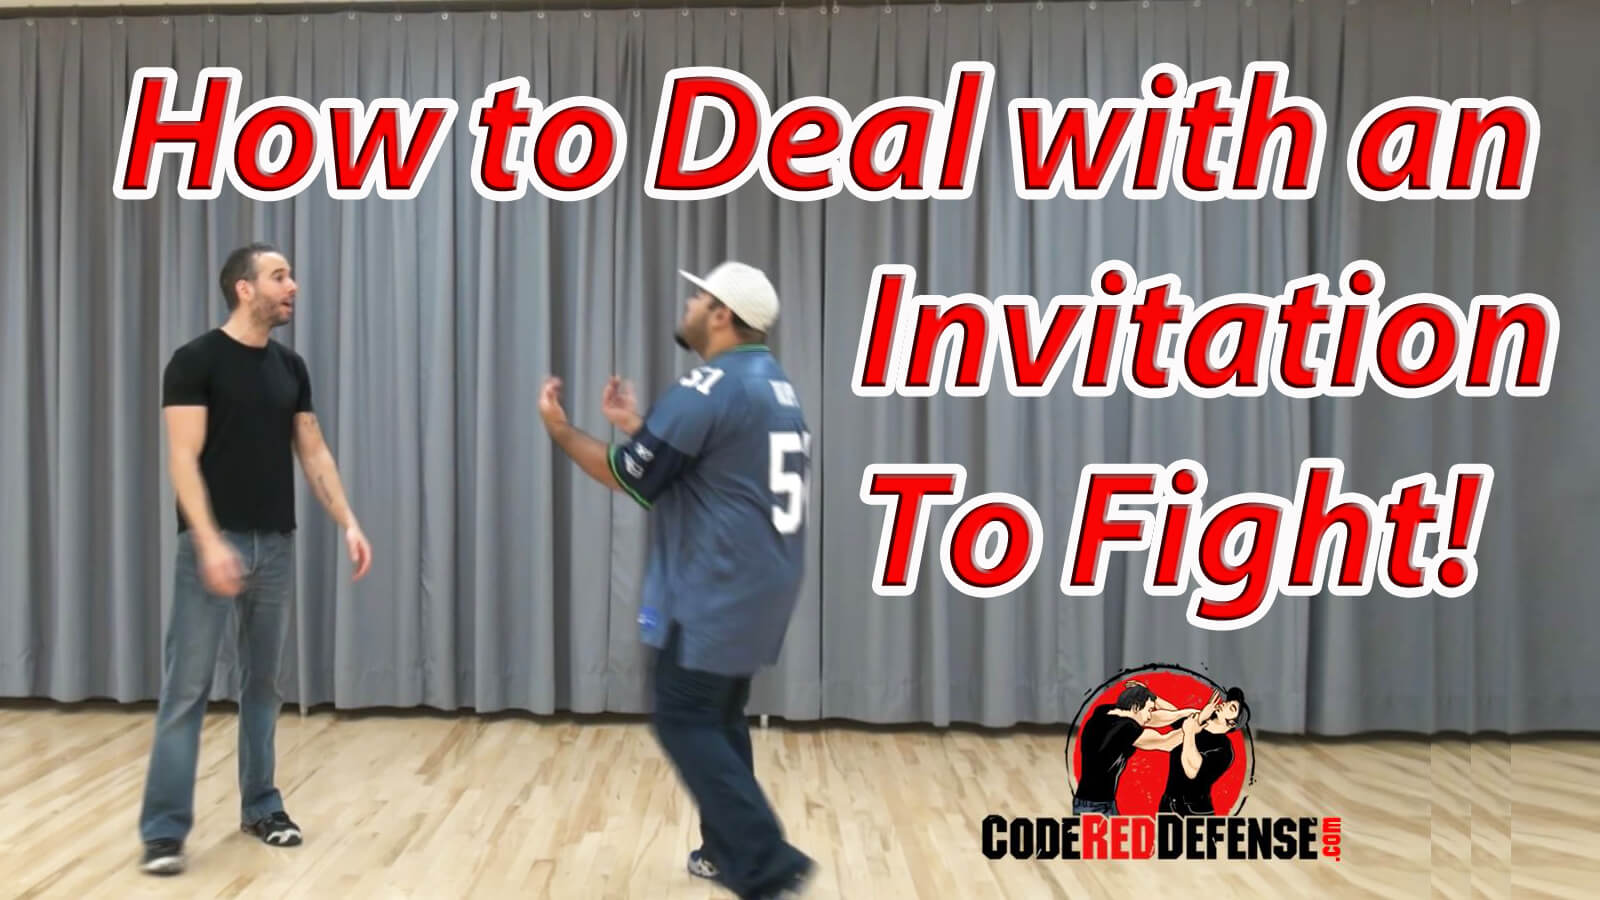 How to Deal with an Invitation to Fight